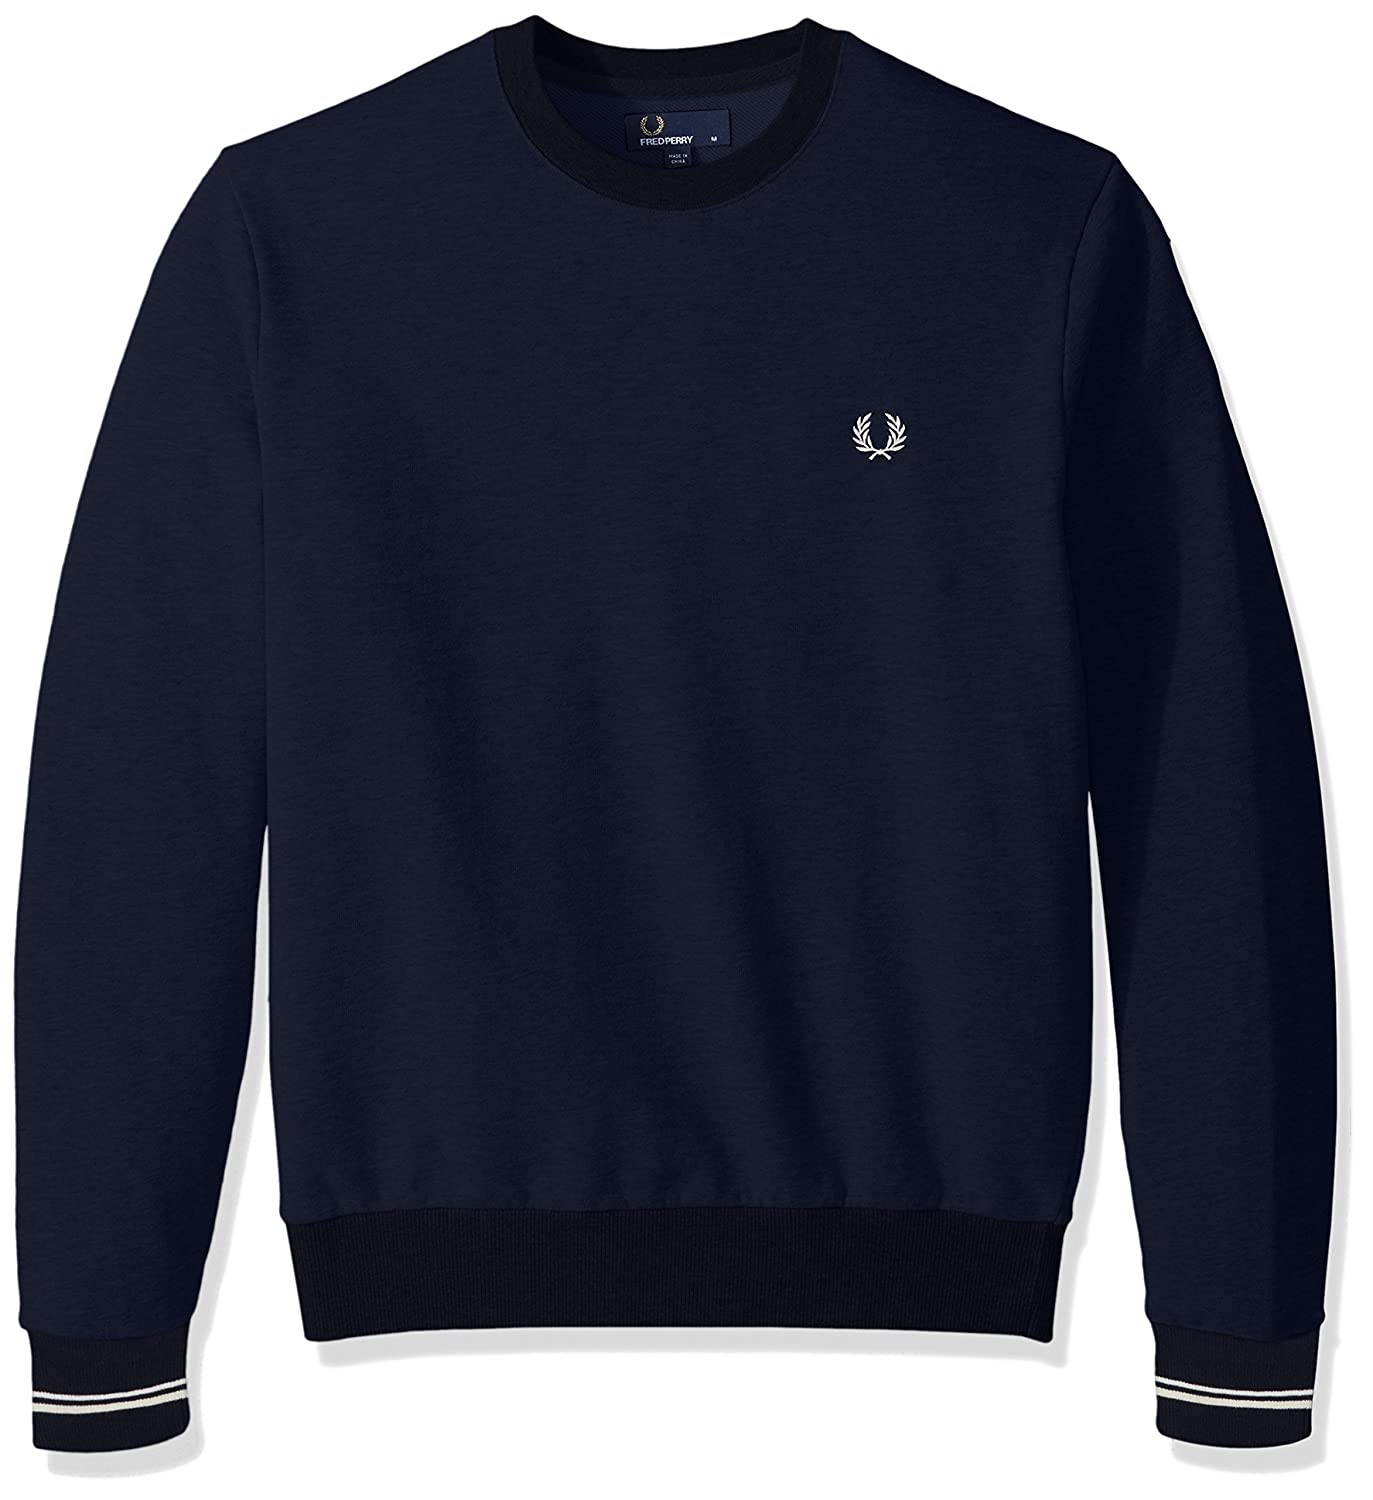 308a91f98a6 Amazon.com: Fred Perry Men's Crew Neck Sweat: Clothing